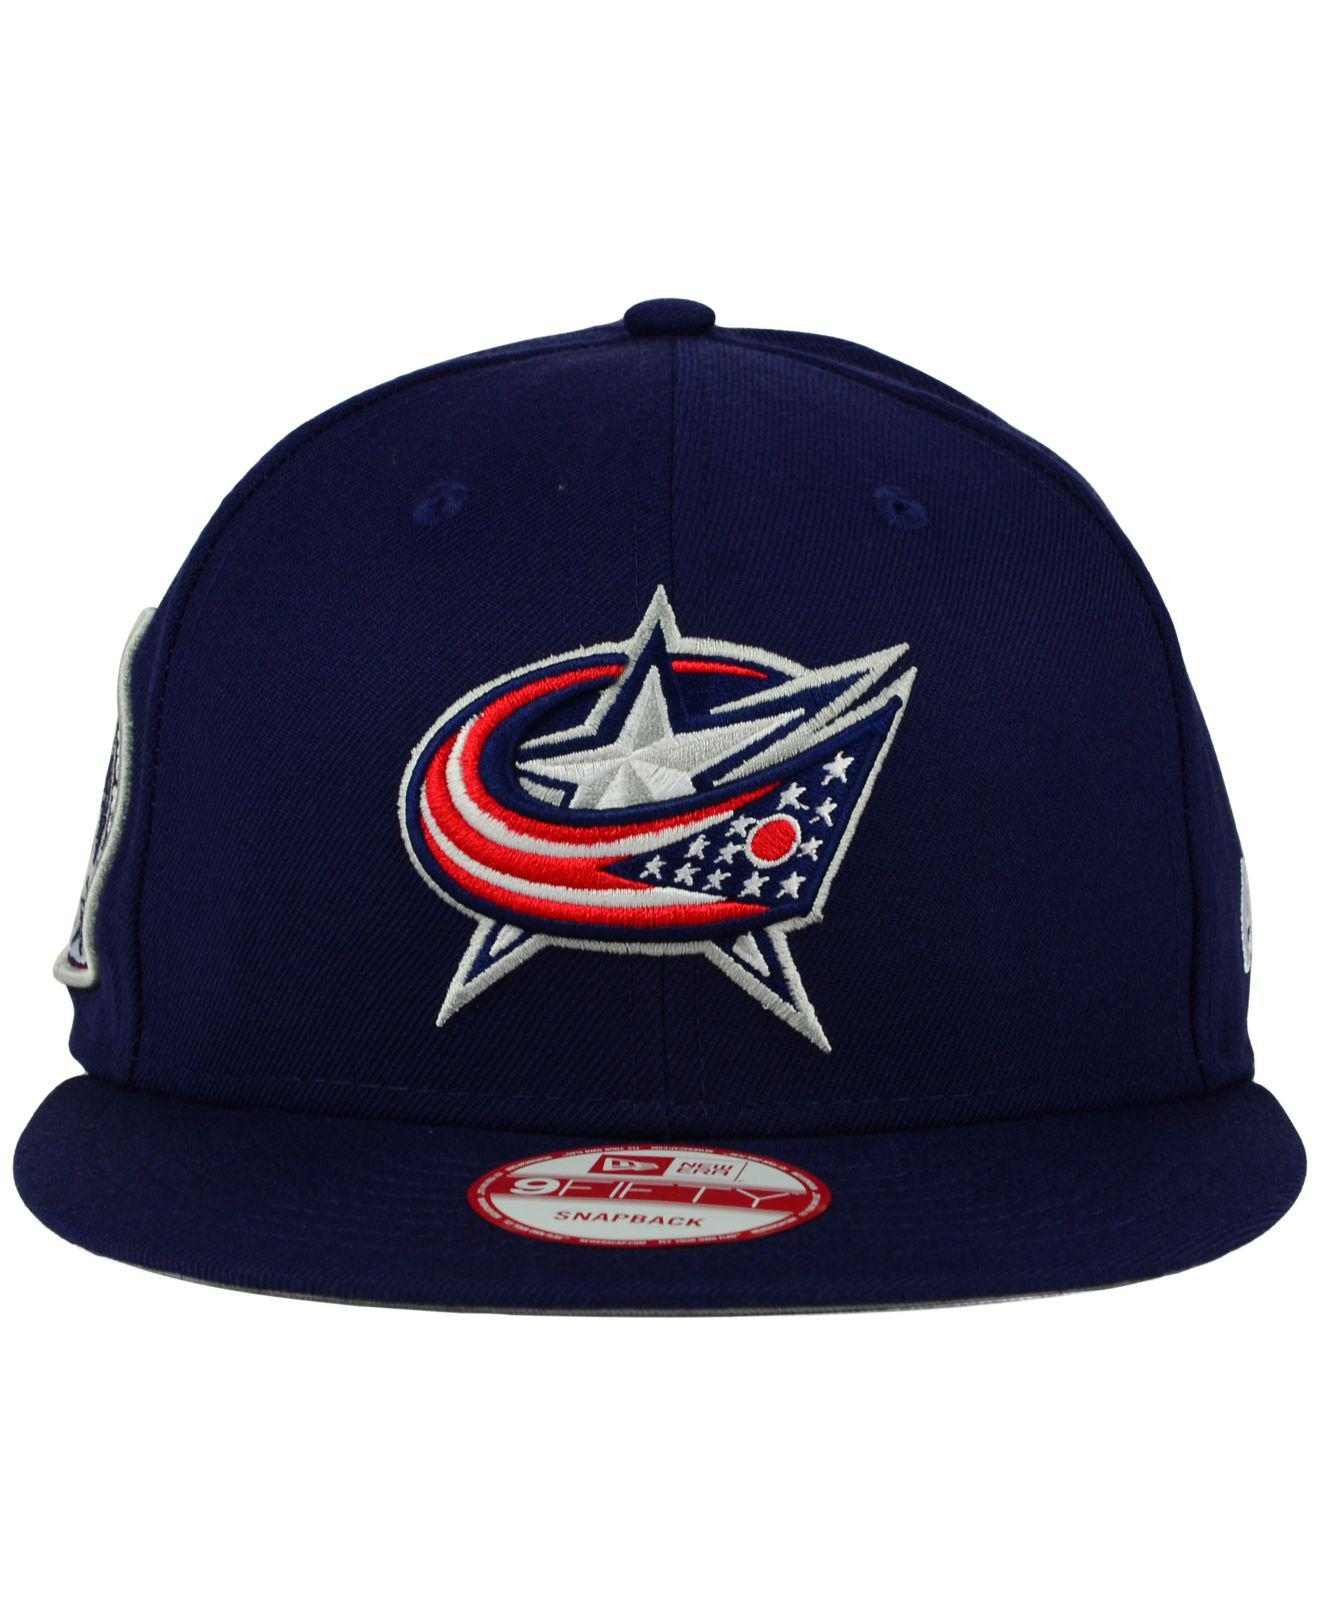 Lyst - KTZ Columbus Blue Jackets All Day 9fifty Snapback Cap in Blue ... ee042ee40e77